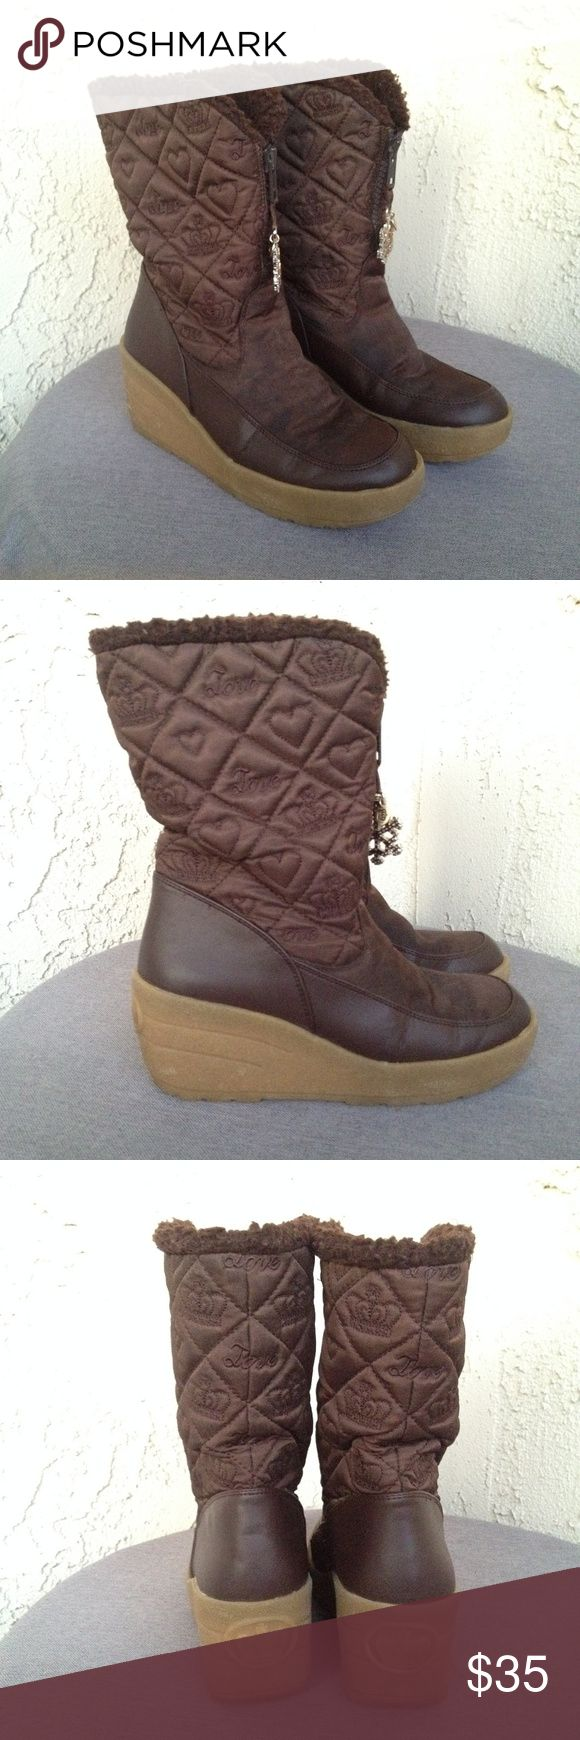 """Juicy Couture Brown Quilted Logo Snow Wedge Boots Juicy Couture Women's Boots Brown Nylon Quilted Crown Snowflake Wedges Shoes  Type: Boots Style: Mid Calf / Zip Front / Quilted With Embroidered Logos / Rhinestone Snowflake Zipper Pulls / Wedges / Snow Rain Boots / Mukluks Brand: Juicy Couture Size: 7 Heel Height: 2.5"""" Material: Nylon Upper / Faux Fur Insulated Lining / Rubber Sole Color: Brown Condition: Great, Preowned Condition - Minor Cracking at Toes - Please See Photos. Country of…"""